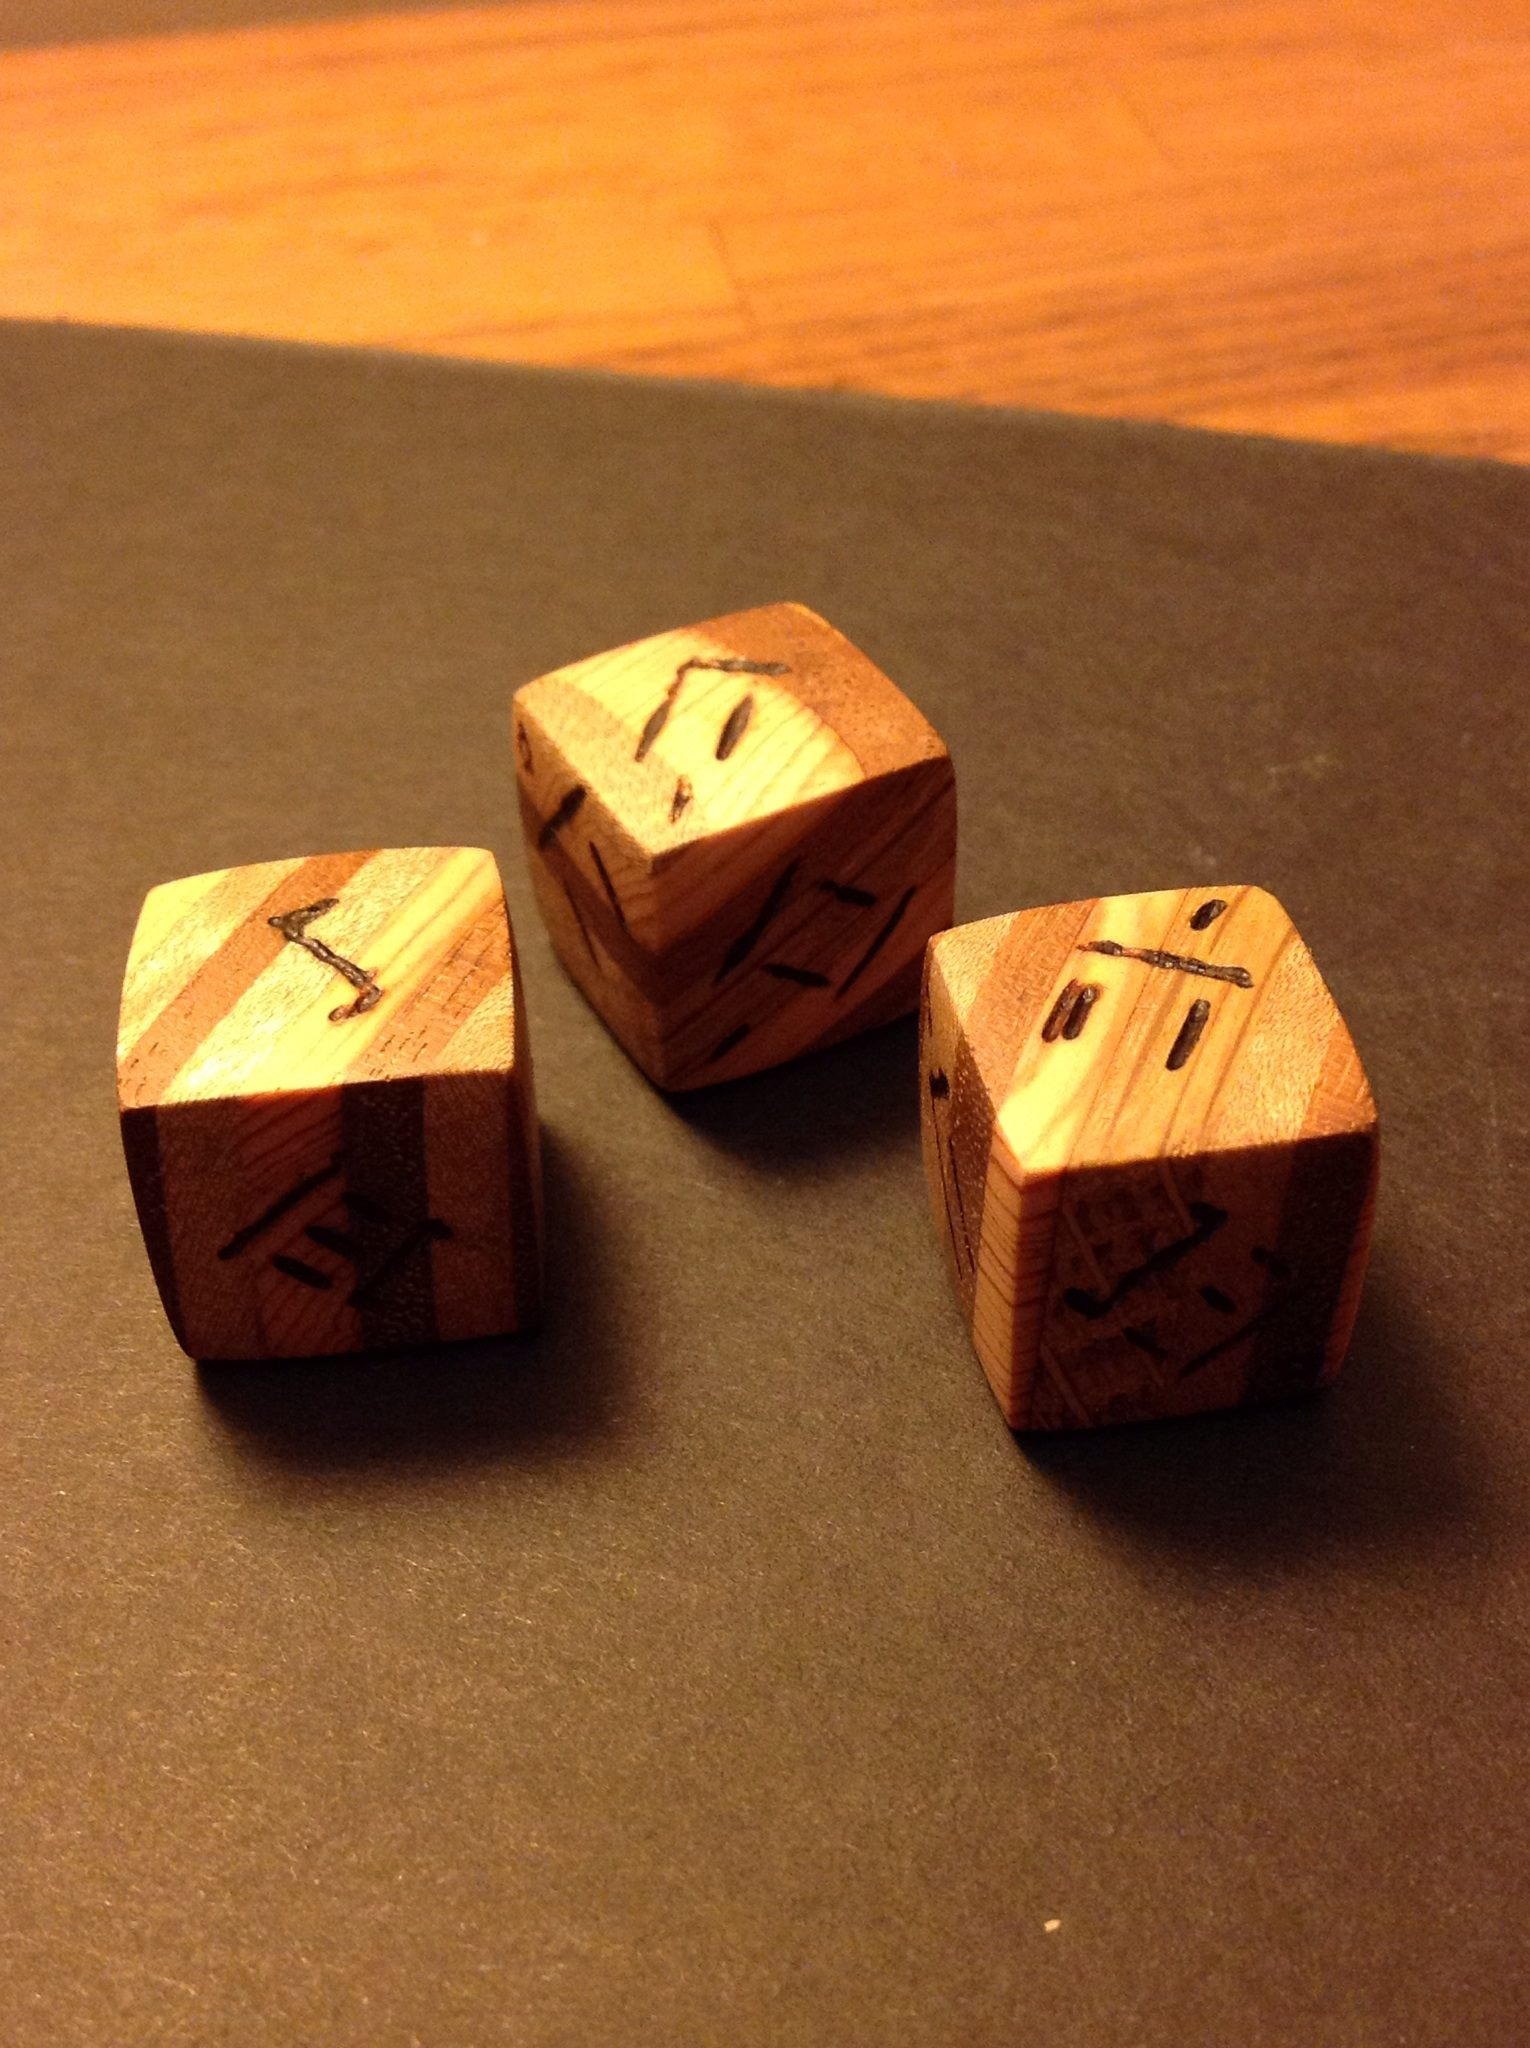 Picture of Oman Numeral D6 Dice